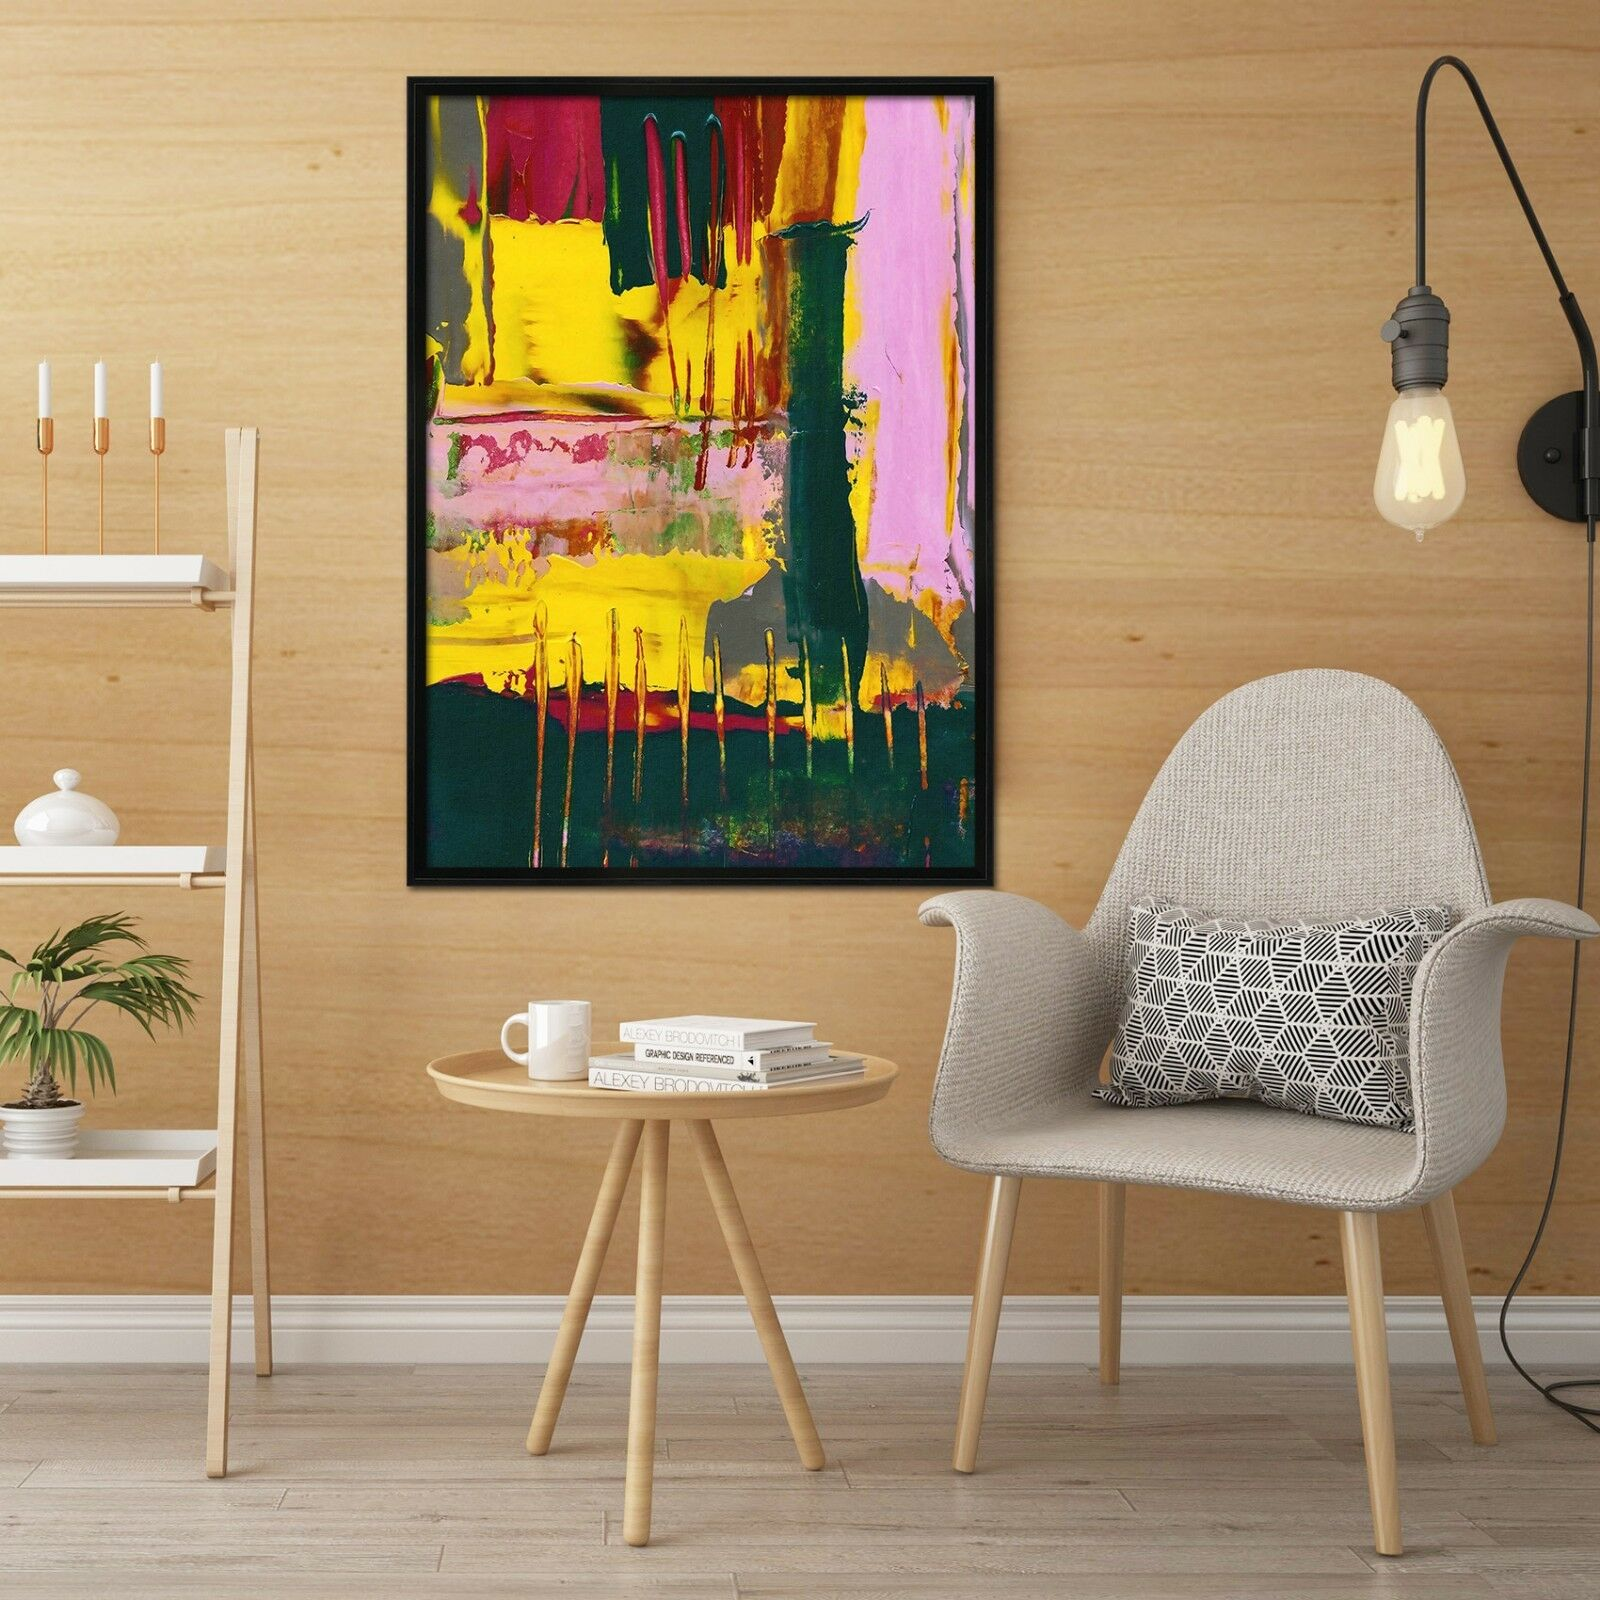 3D Graffiti Abstract 3 Framed Poster Home Decor Print Painting Art AJ WALLPAPER